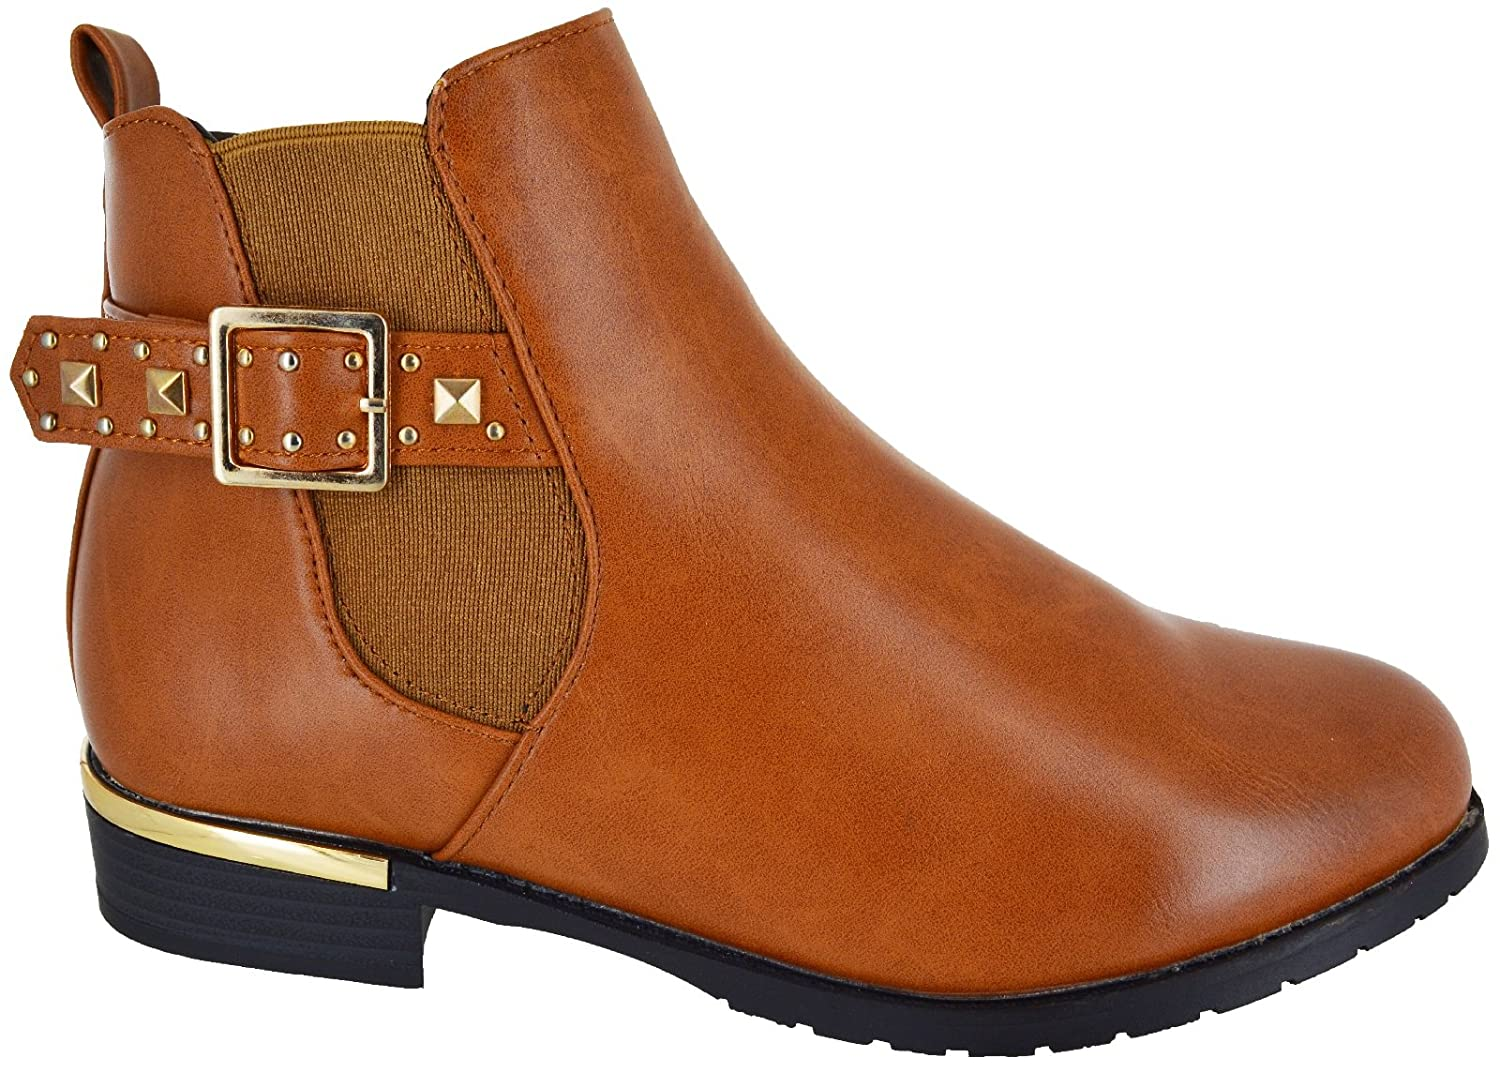 WOMENS LADIES FLAT ANKLE CHELSEA BOOTS CASUAL BUCKLE STRAP ZIP LOW HEEL SHOES